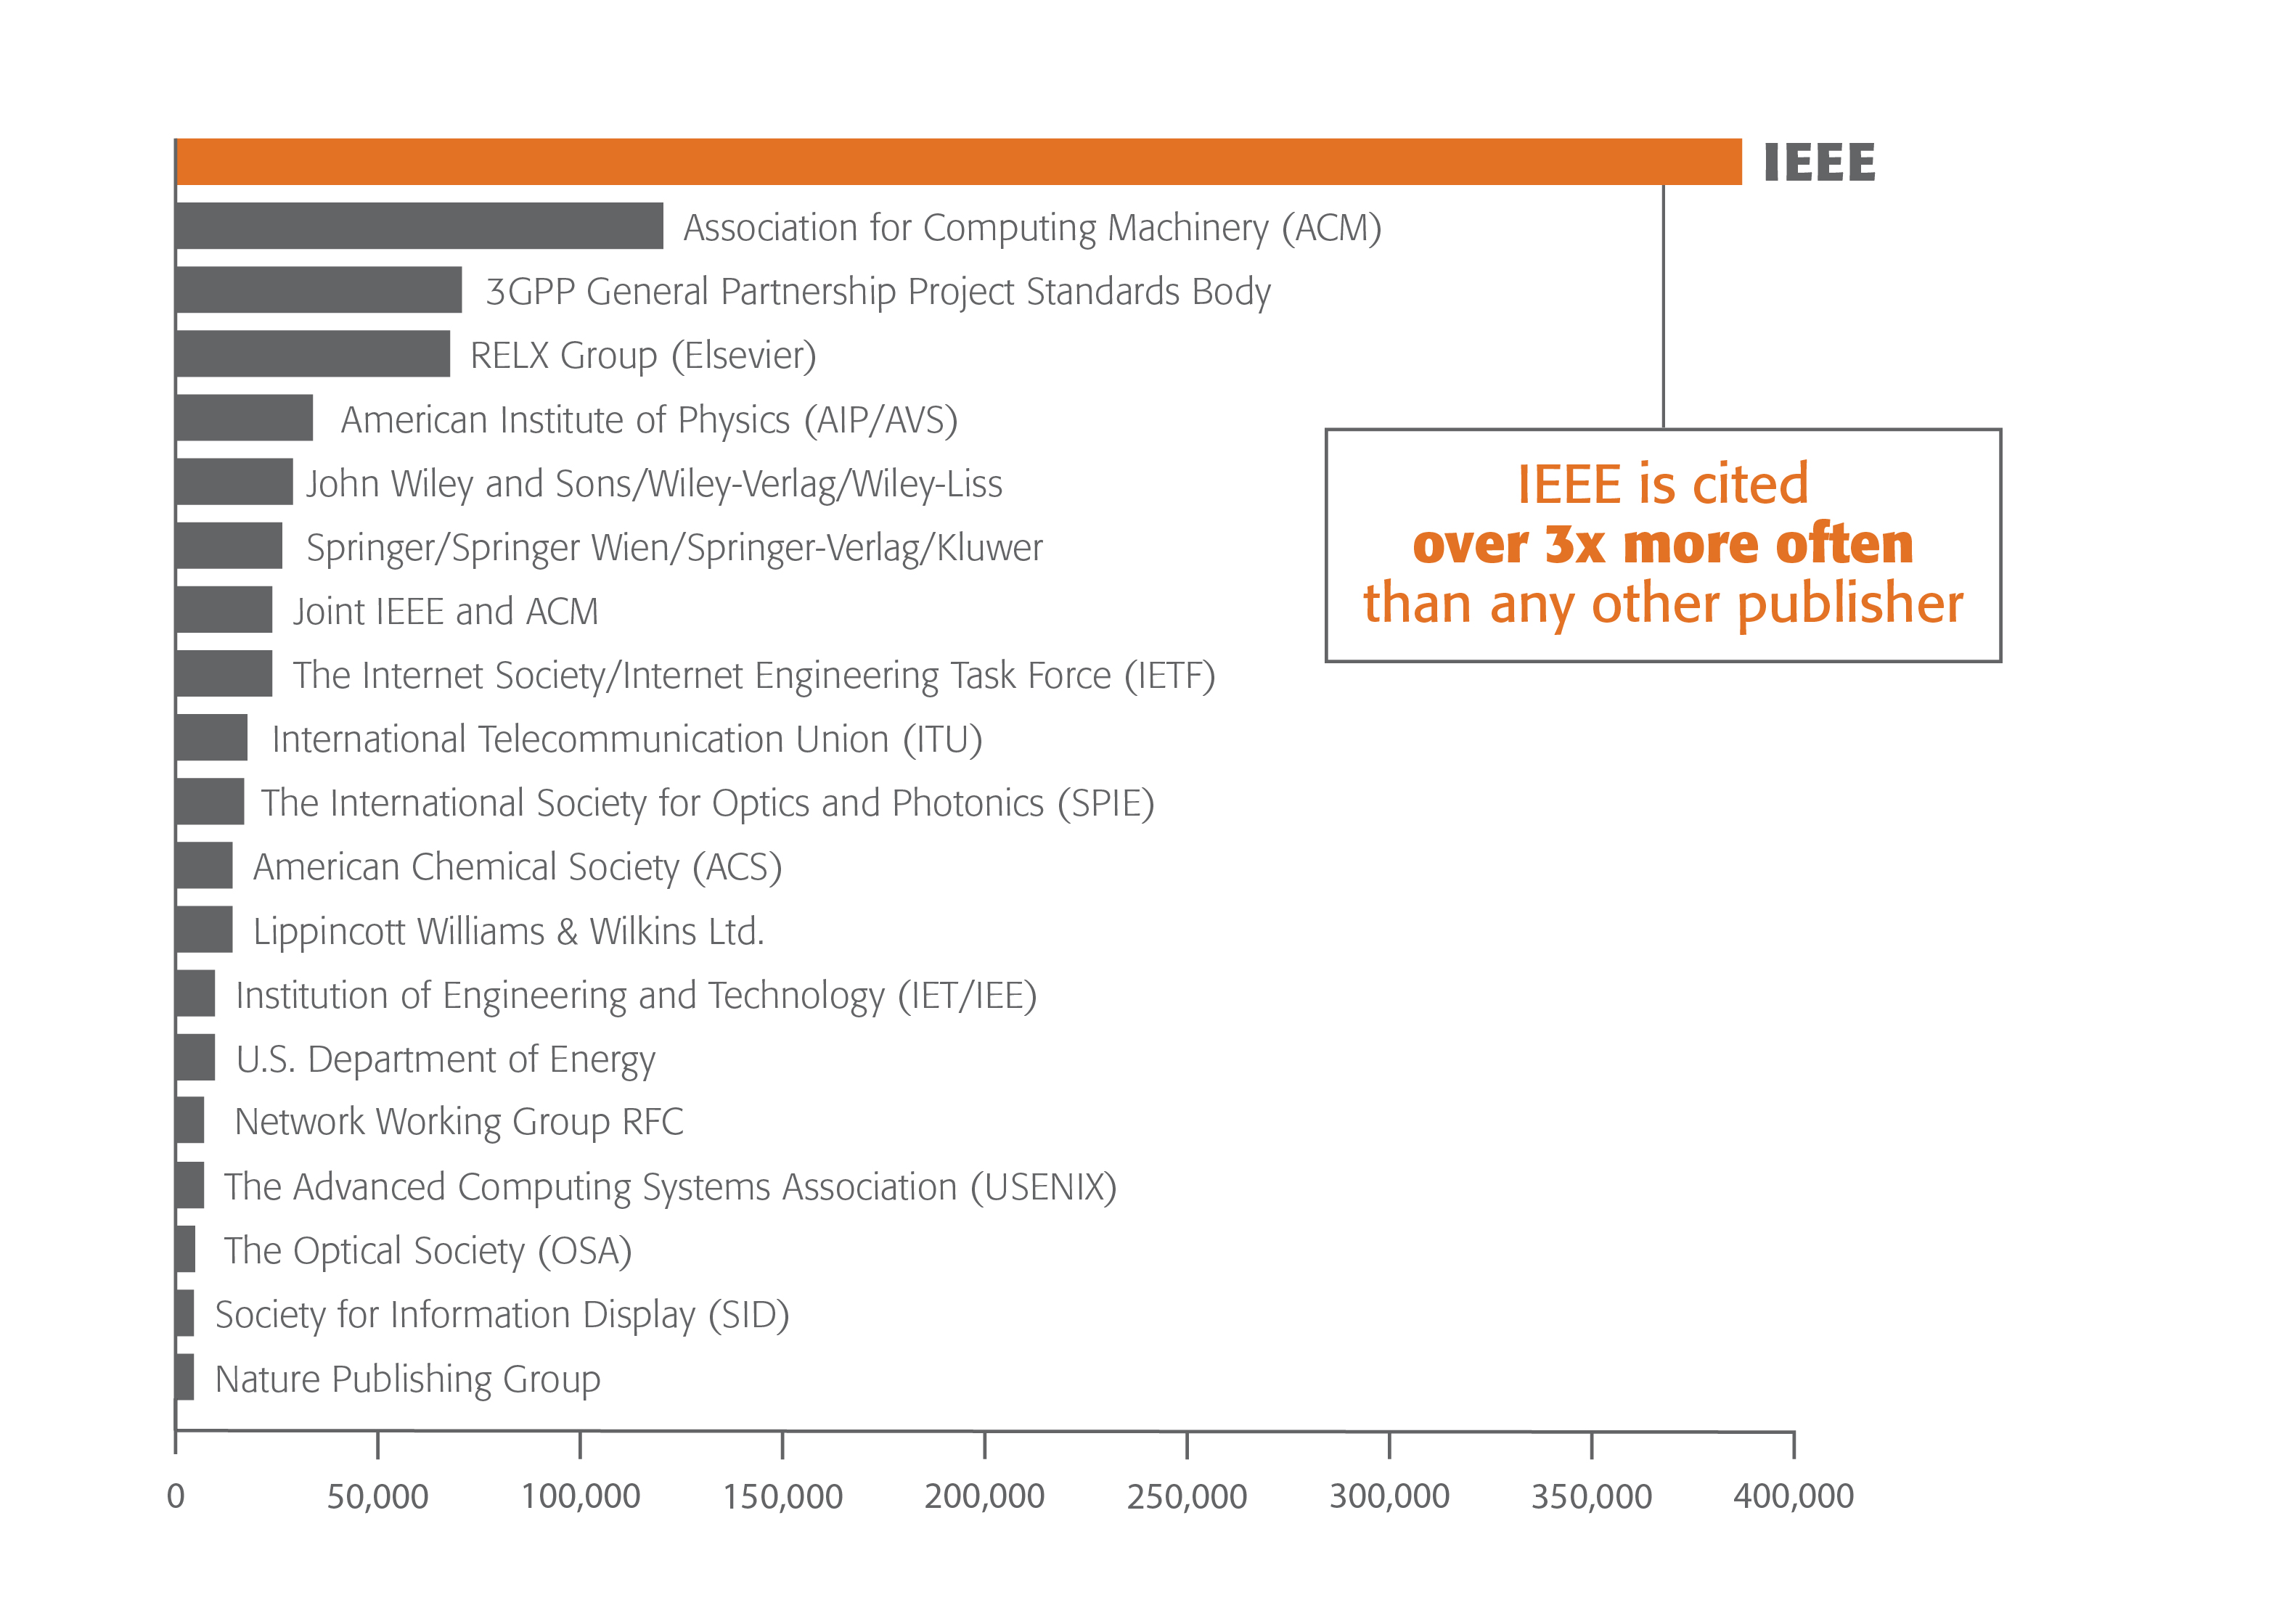 patent citations chart